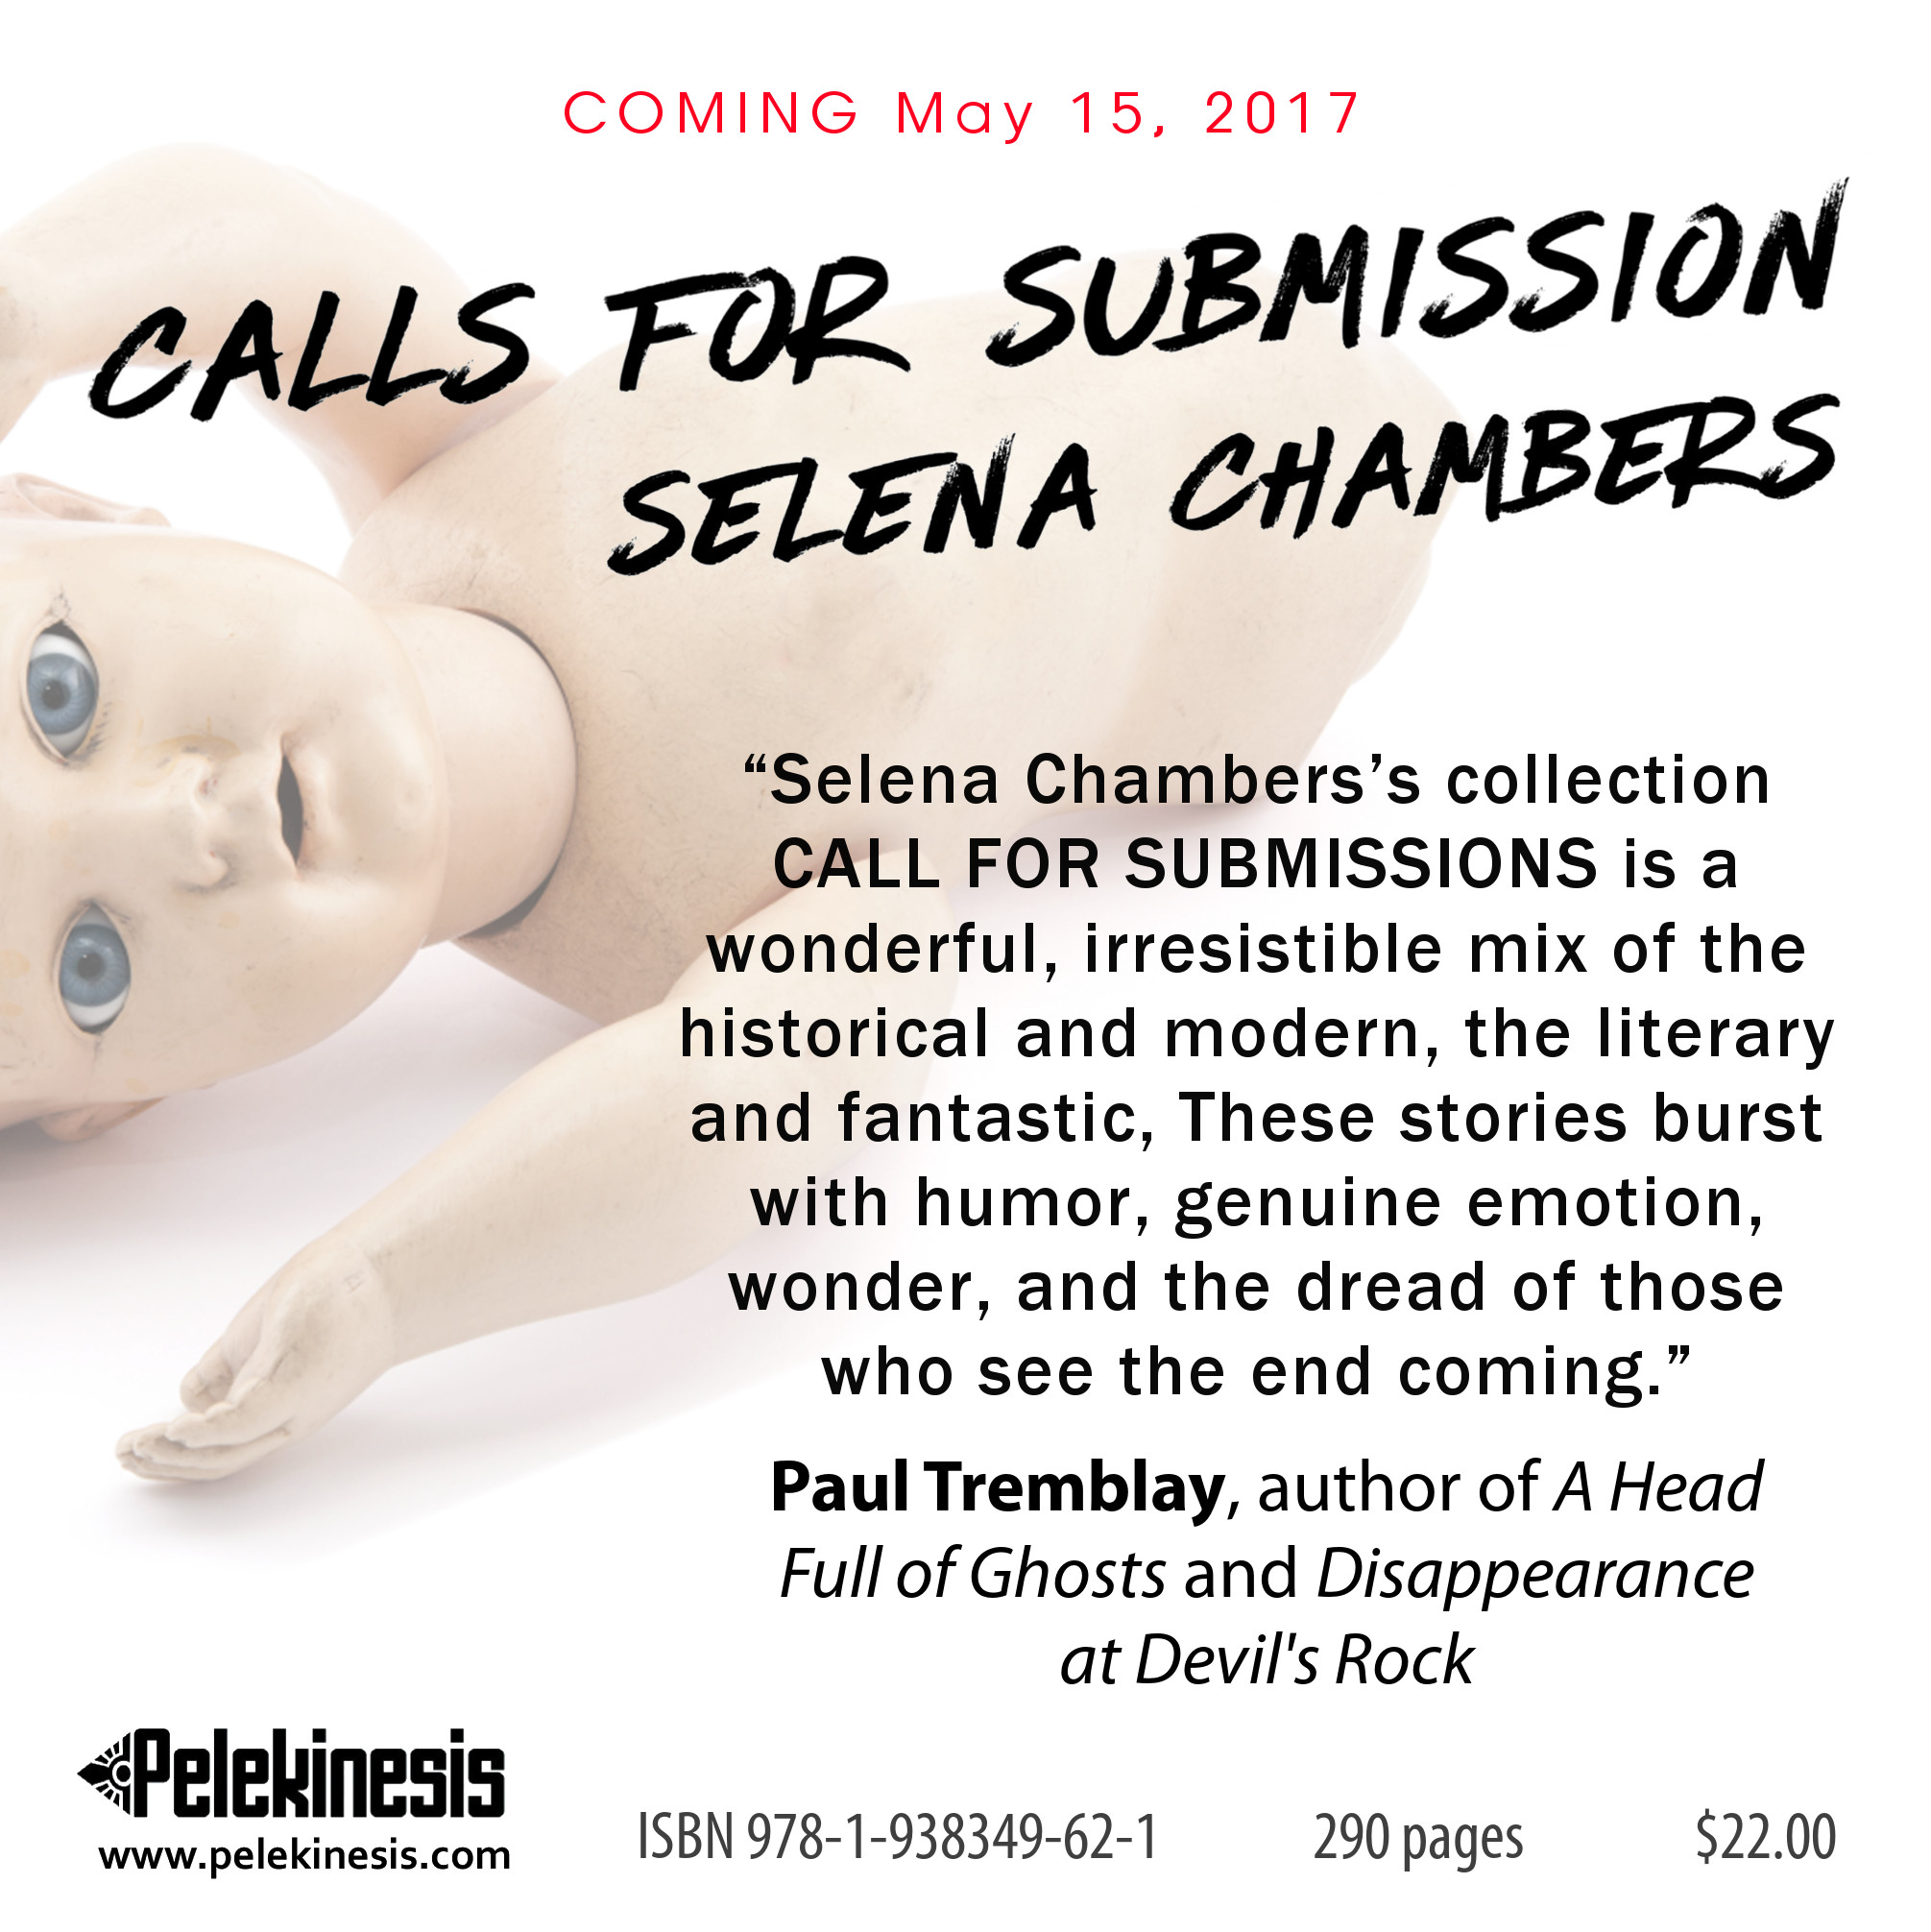 selena_chambers-calls_for_submission-paul_tremblay